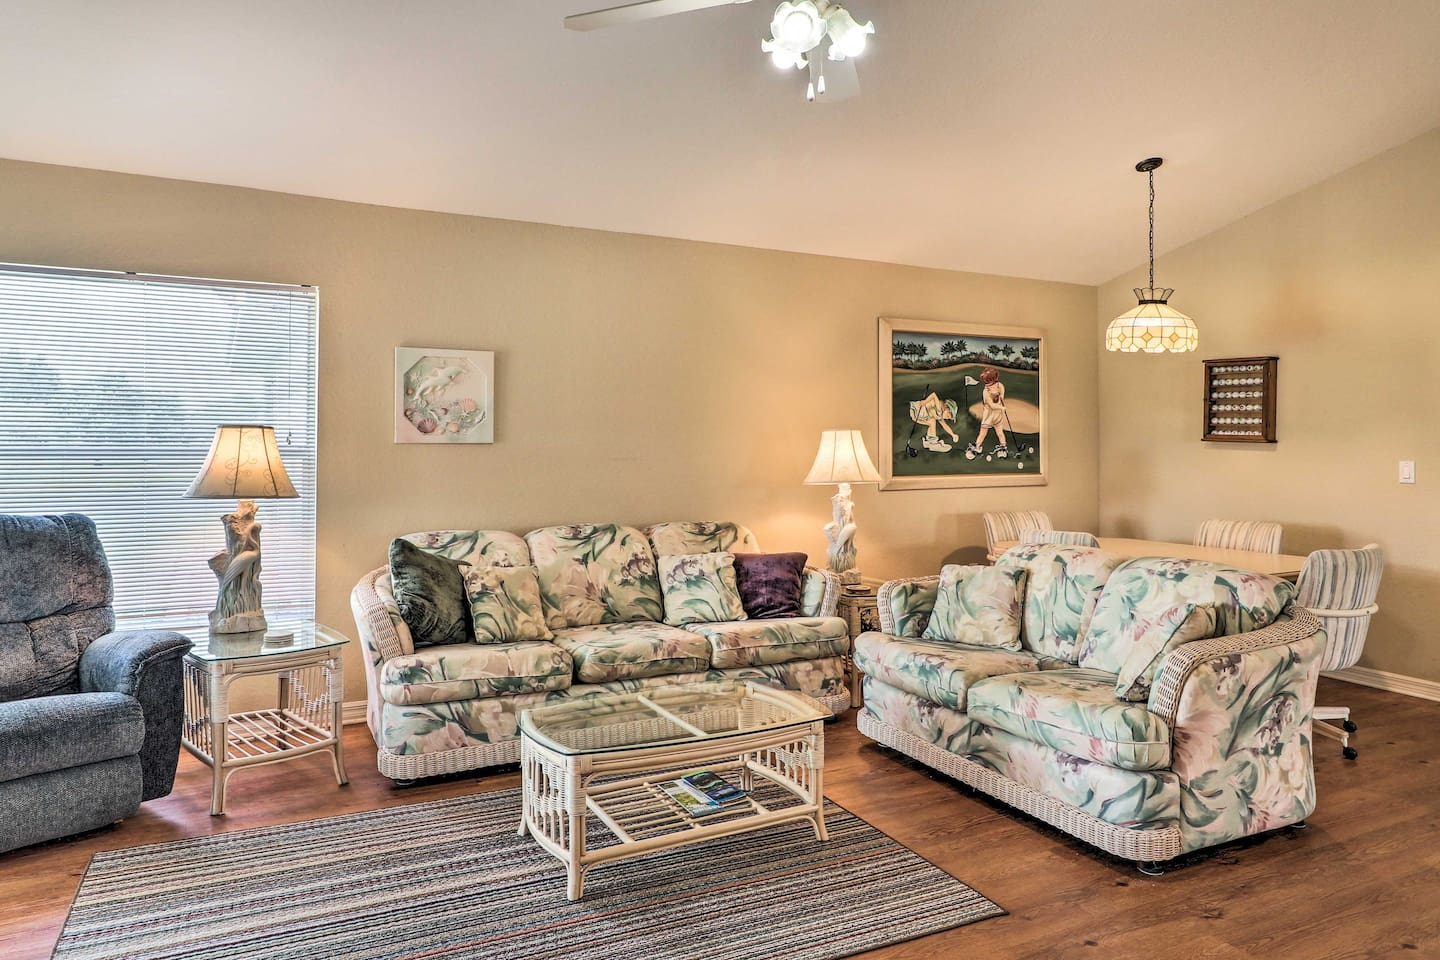 With 3 bedrooms and 2 baths, your group of 6 can comfortably unwind each night.